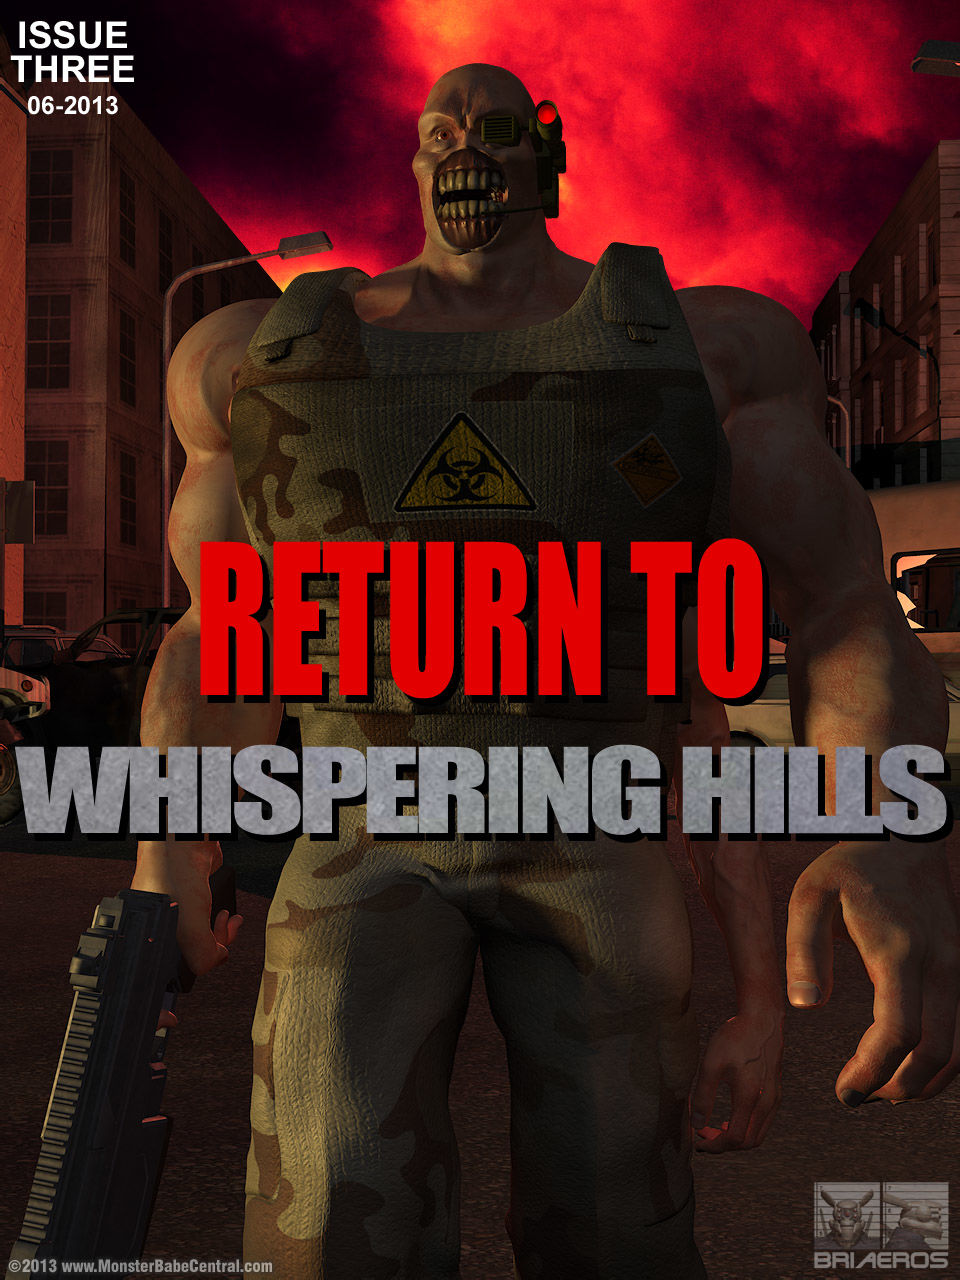 Return to Whispering Hills - part 3